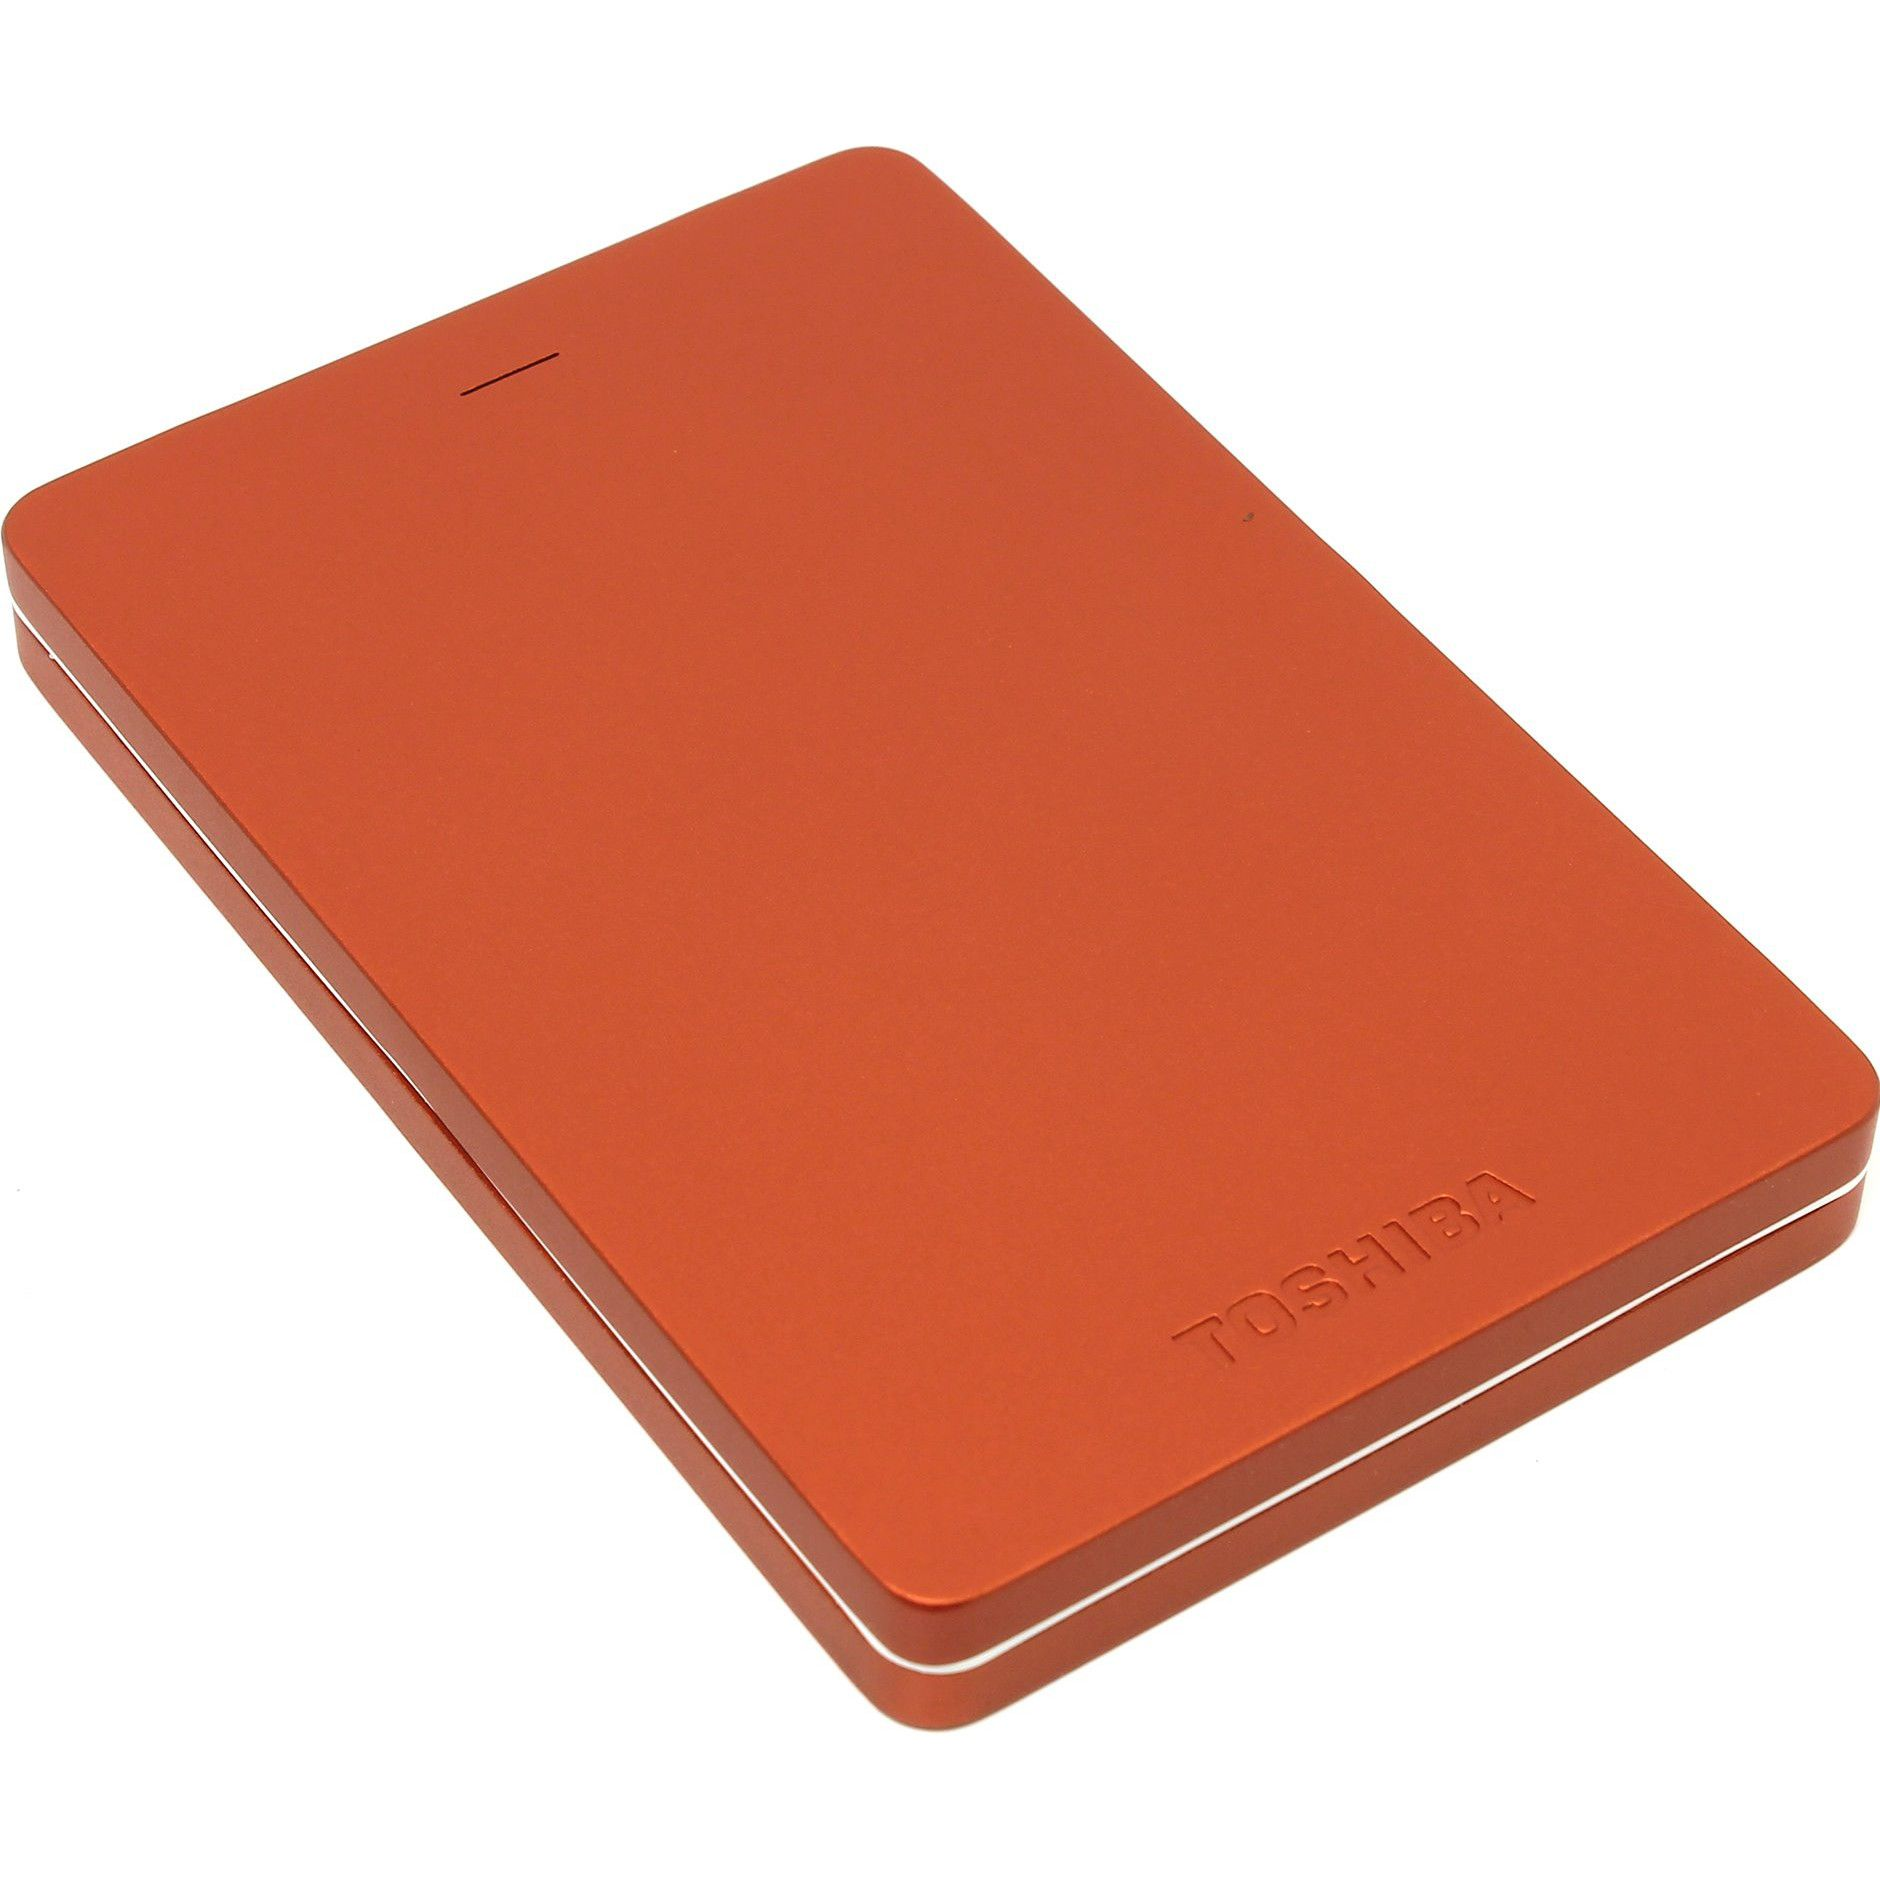 Hard Disk Extern Toshiba Canvio Alu 500GB USB 3.0 Red